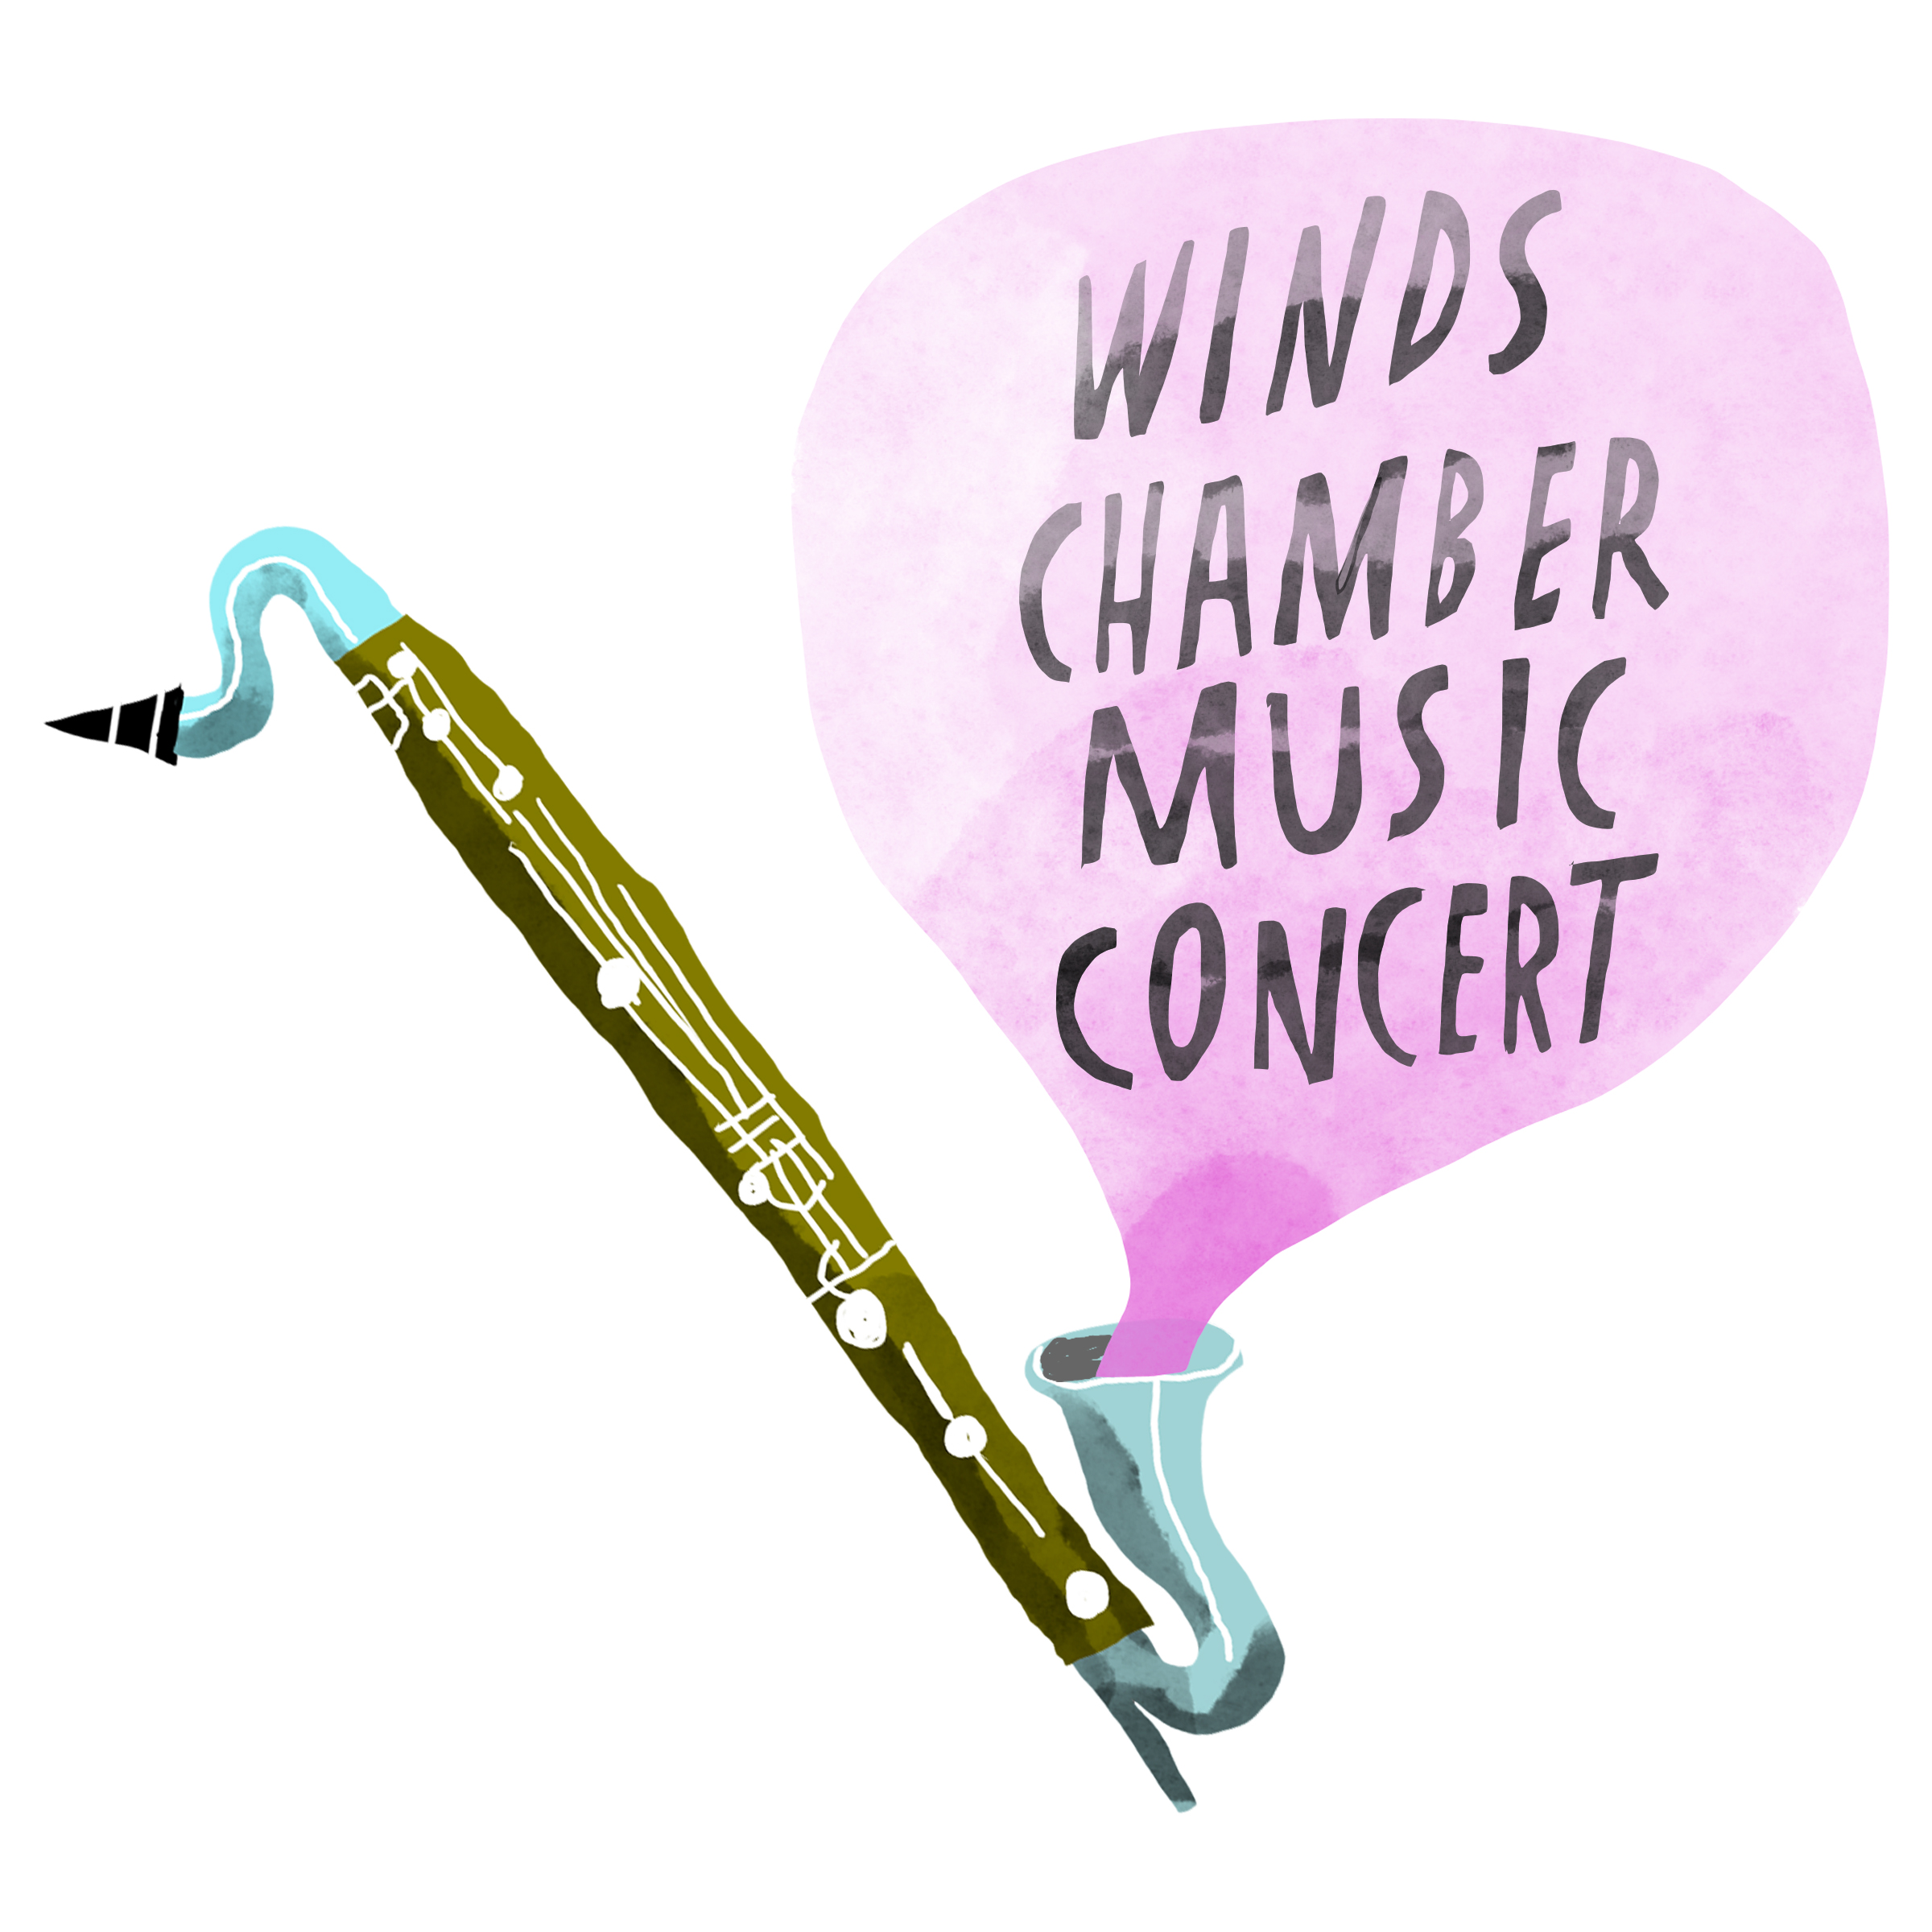 Winds Chamber Music Concert social media square 1.jpg